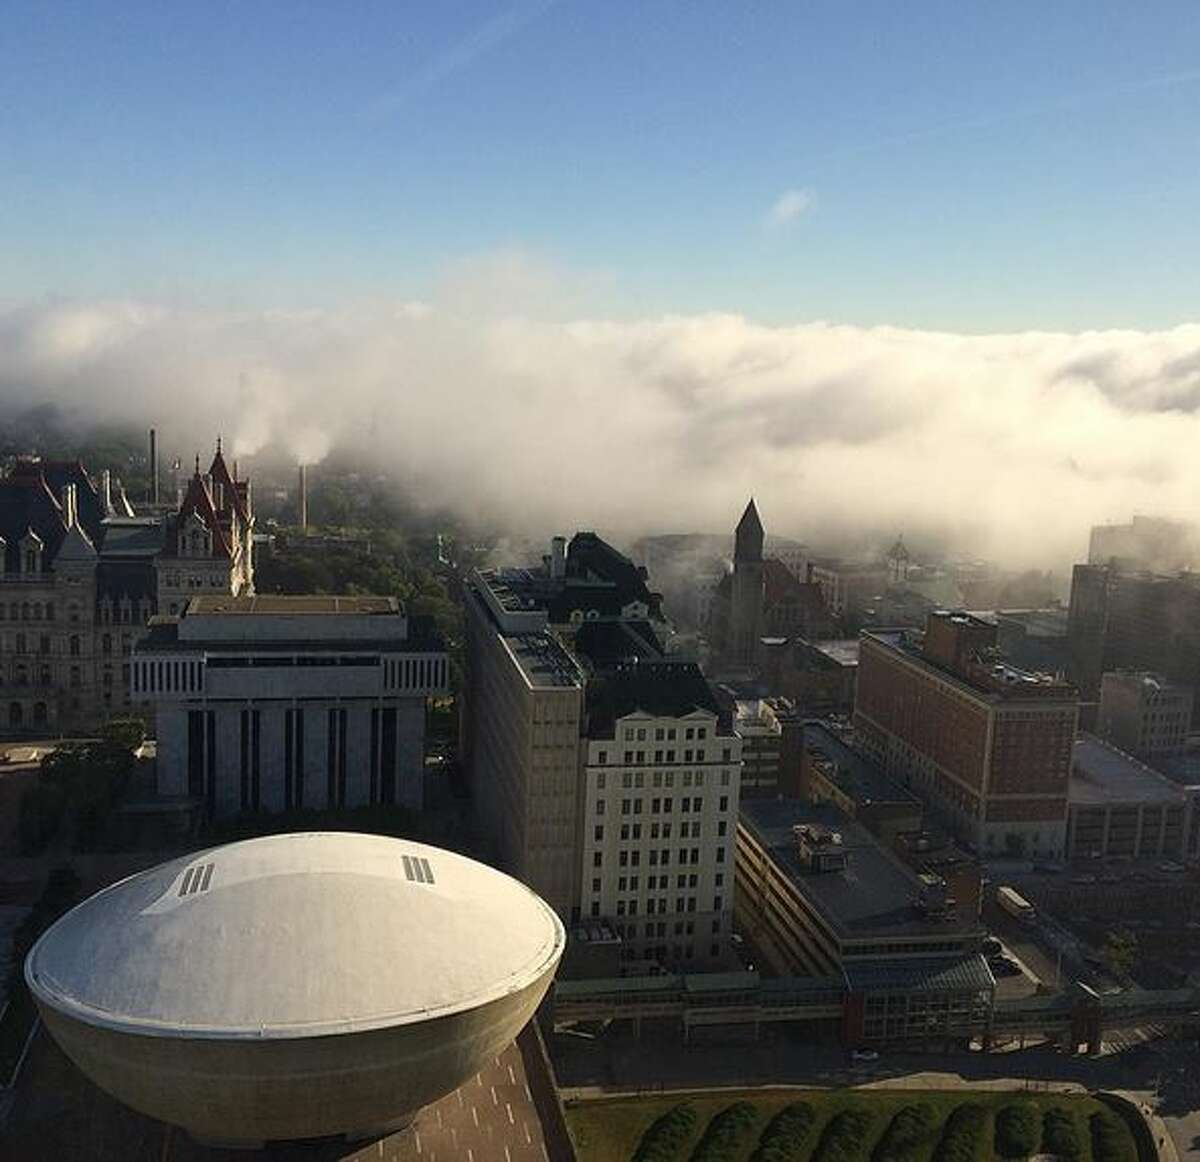 View from up high in the Corning Tower. Photo credit: @nobezilla85